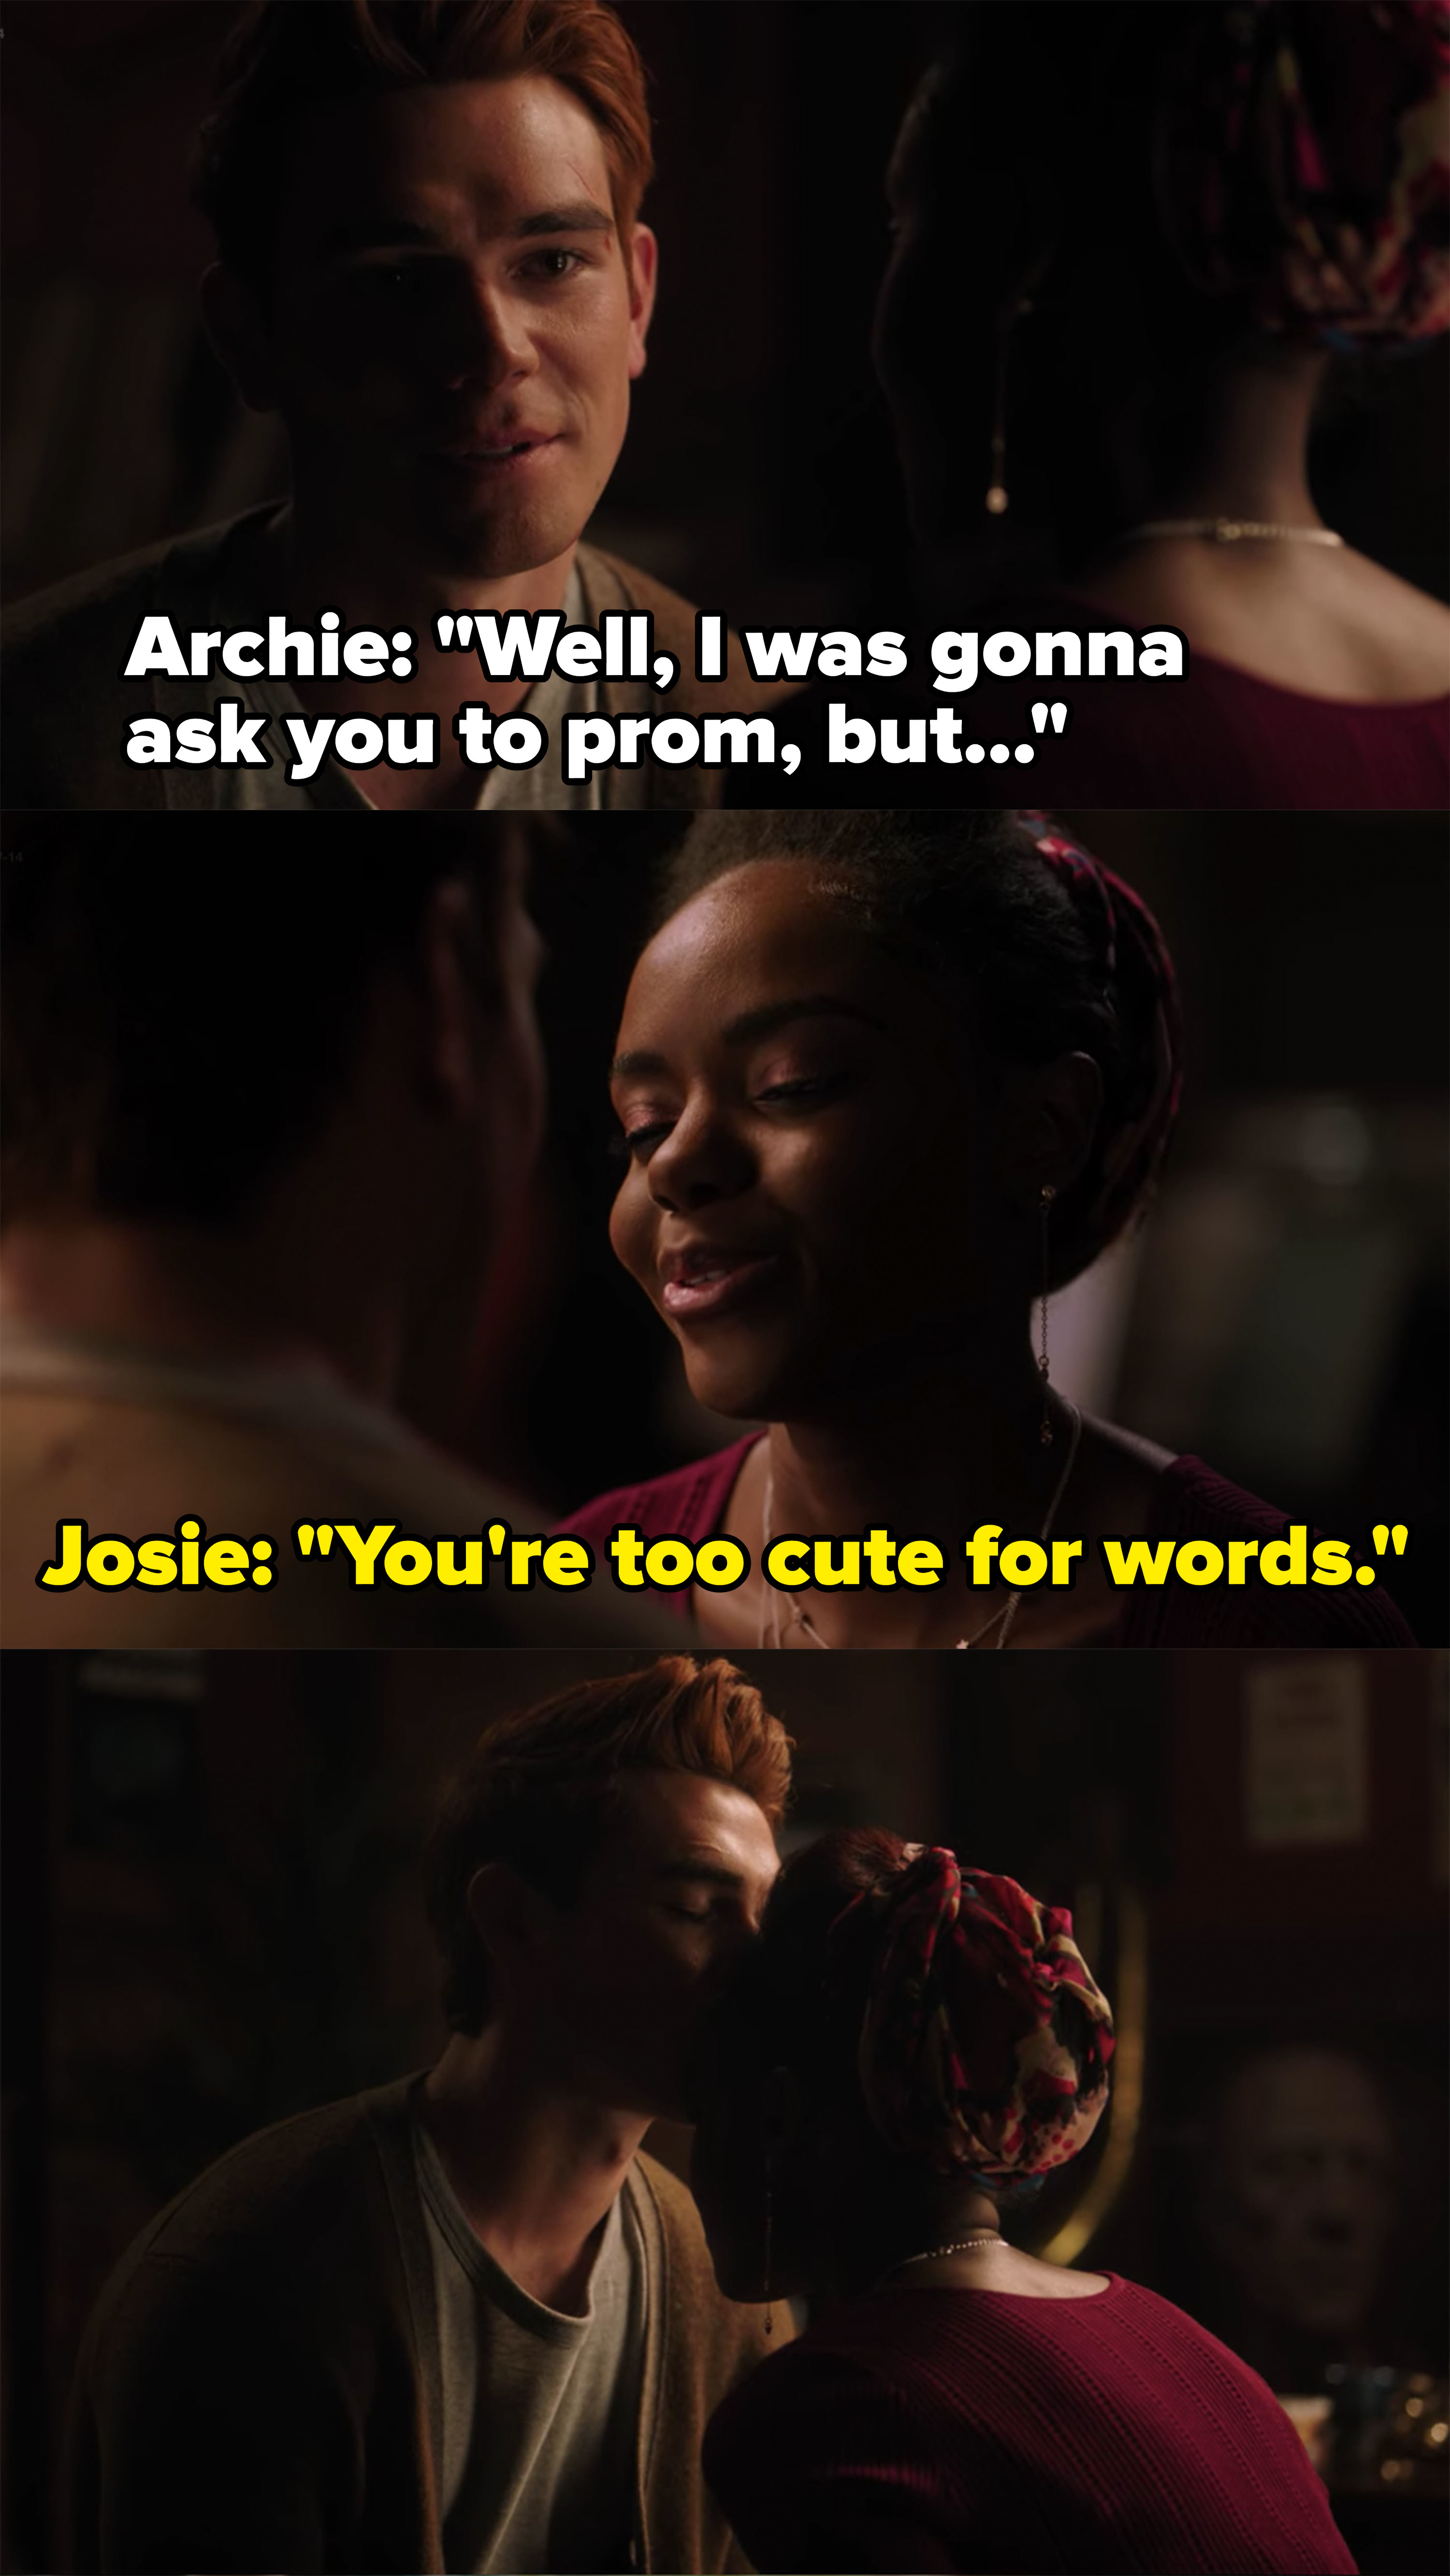 Archie kisses Josie's forehead and lets her go